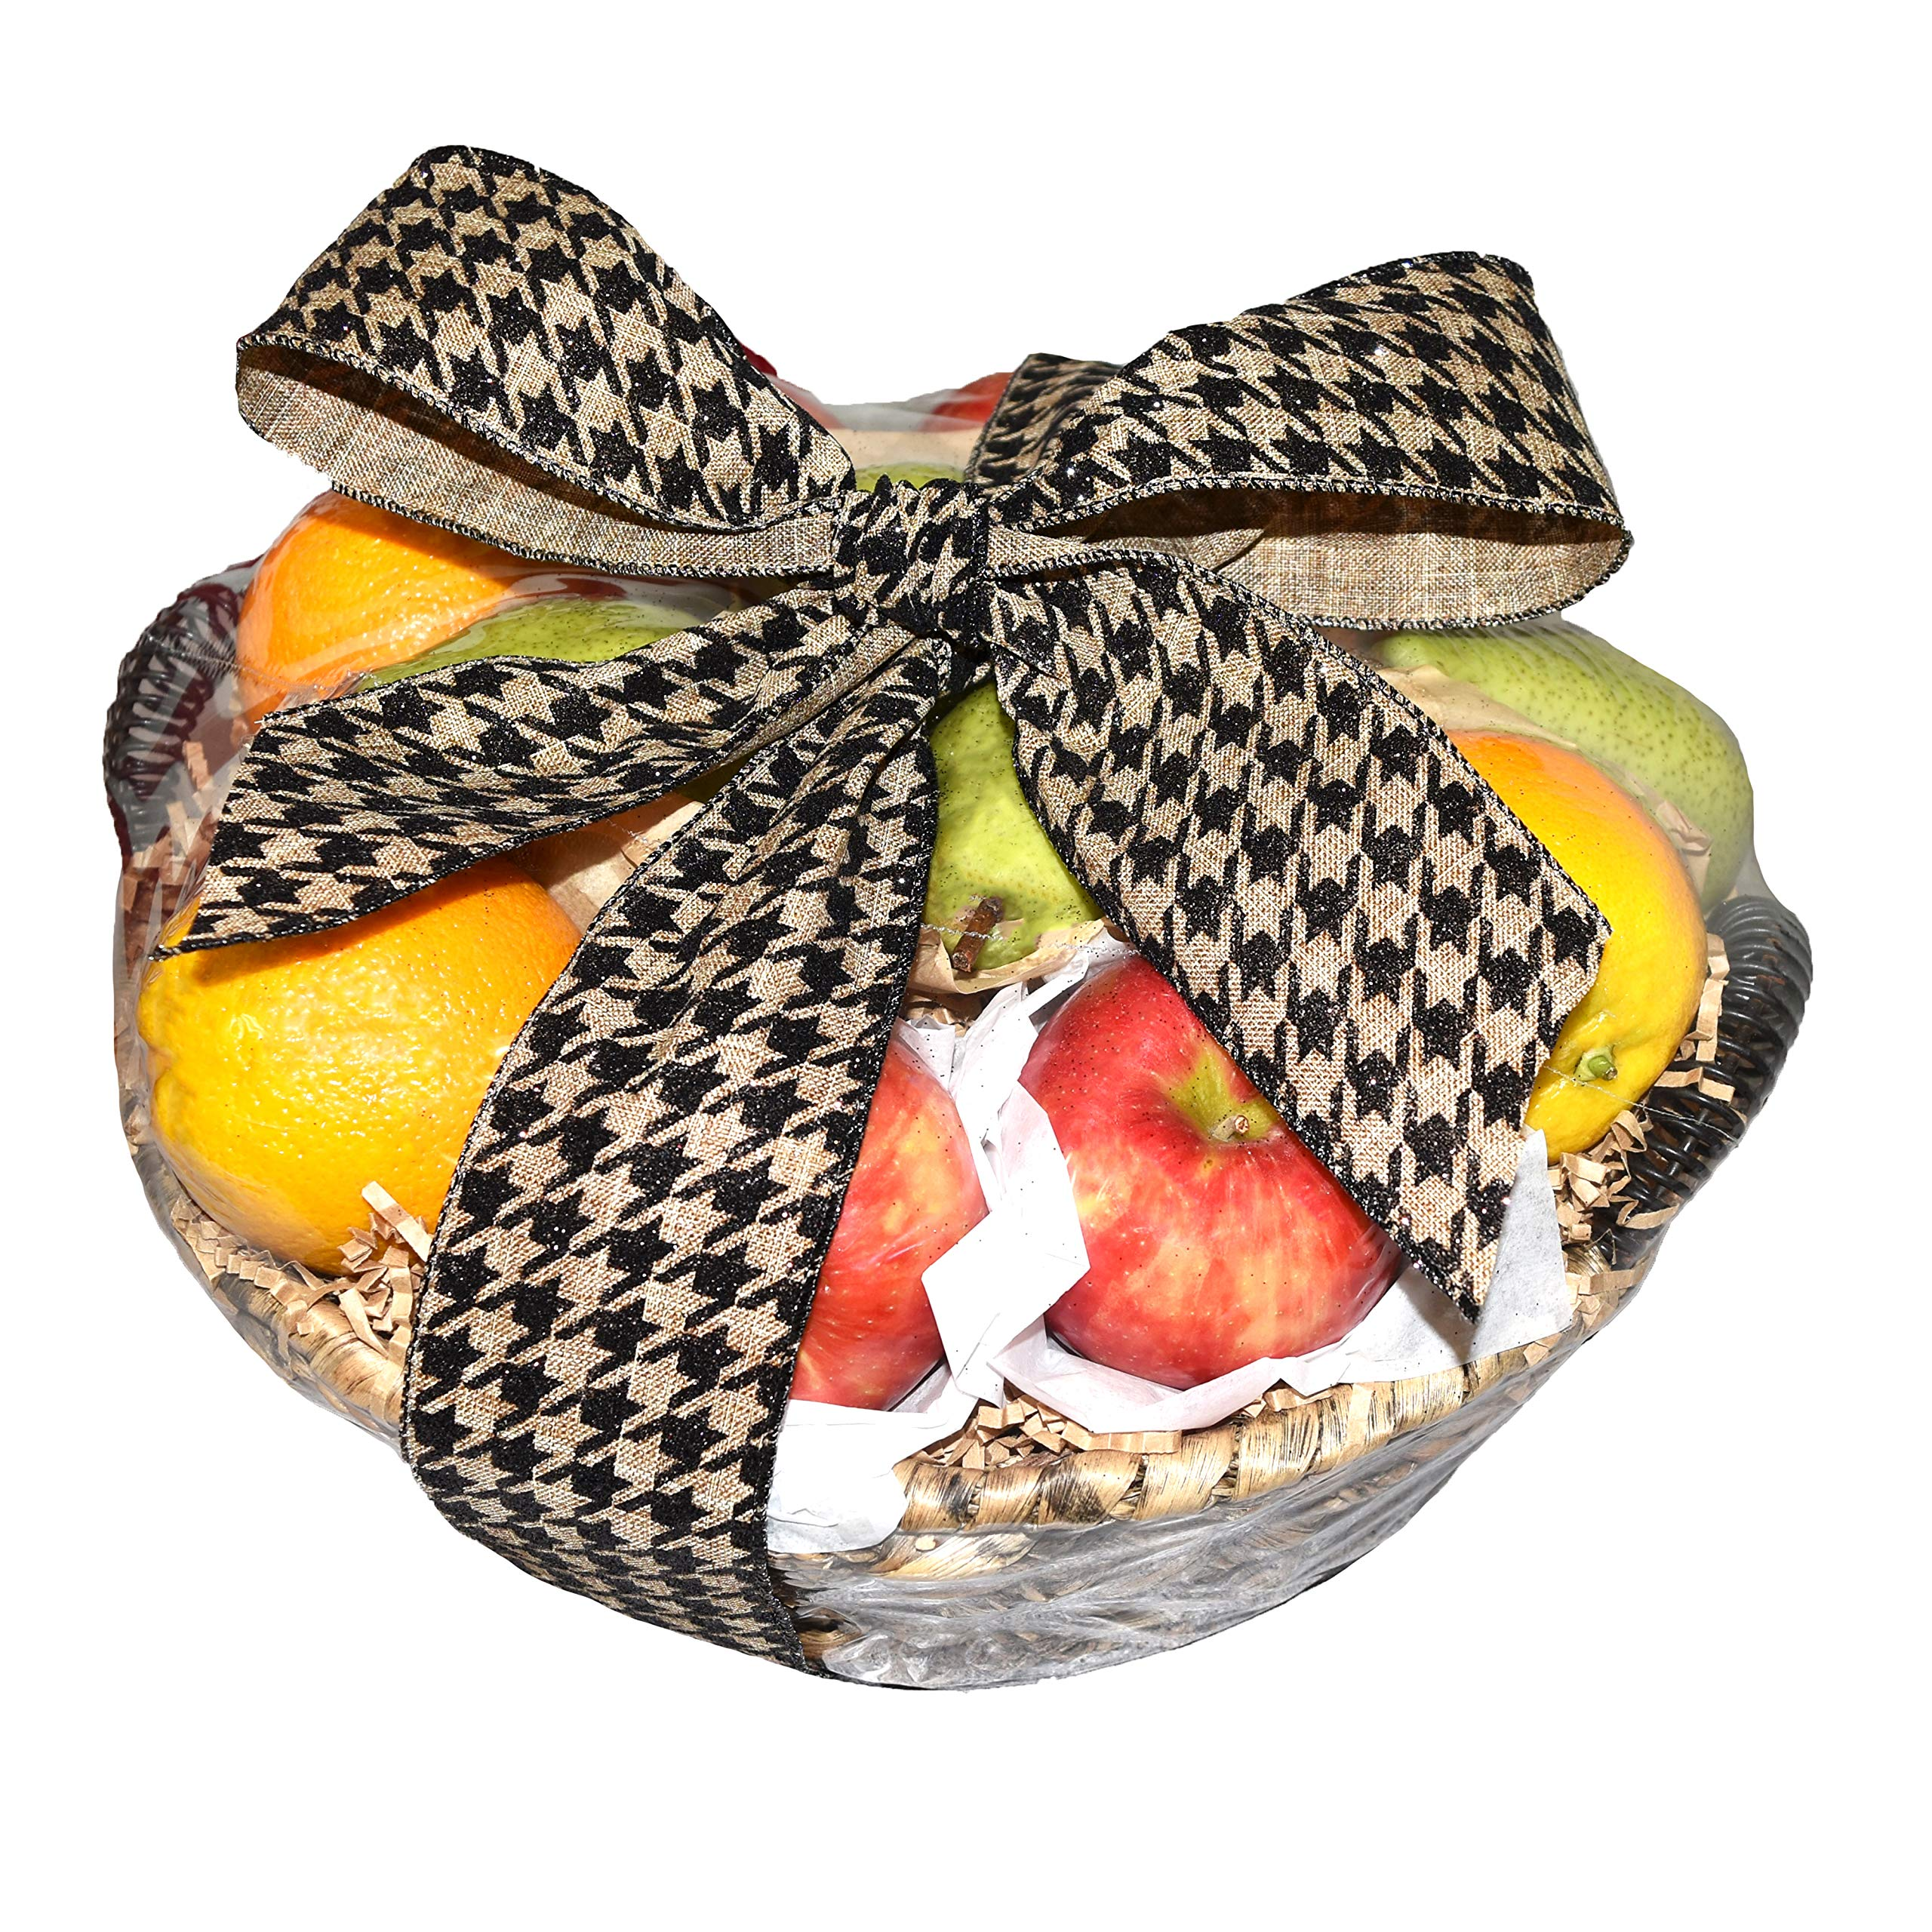 16-Piece Premium Orchard Favorites Fruit Basket